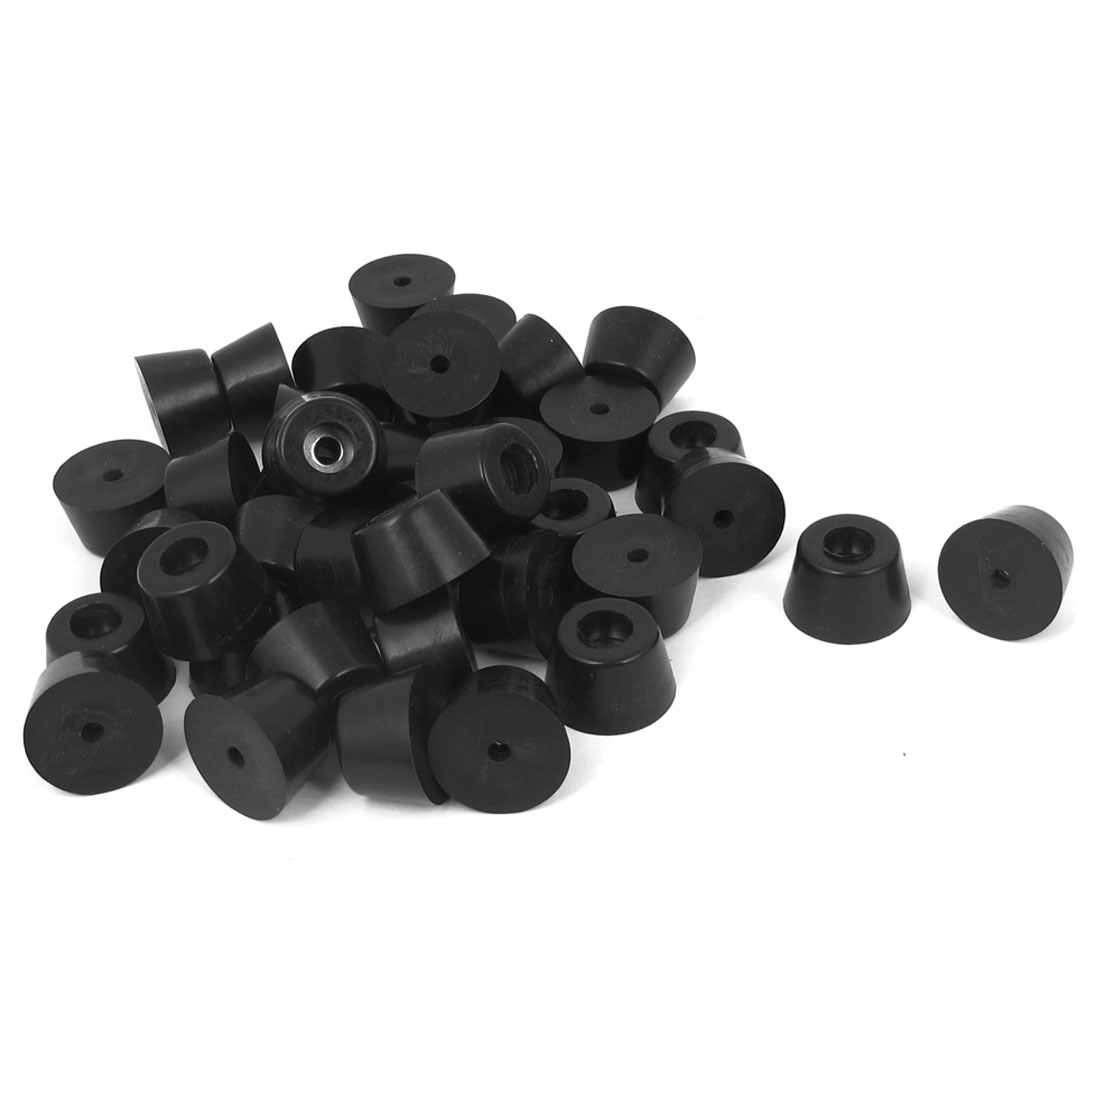 40pcs Nonslip Rubber Feet Protector 24mmx15mm Black for Lathe Machine Furniture